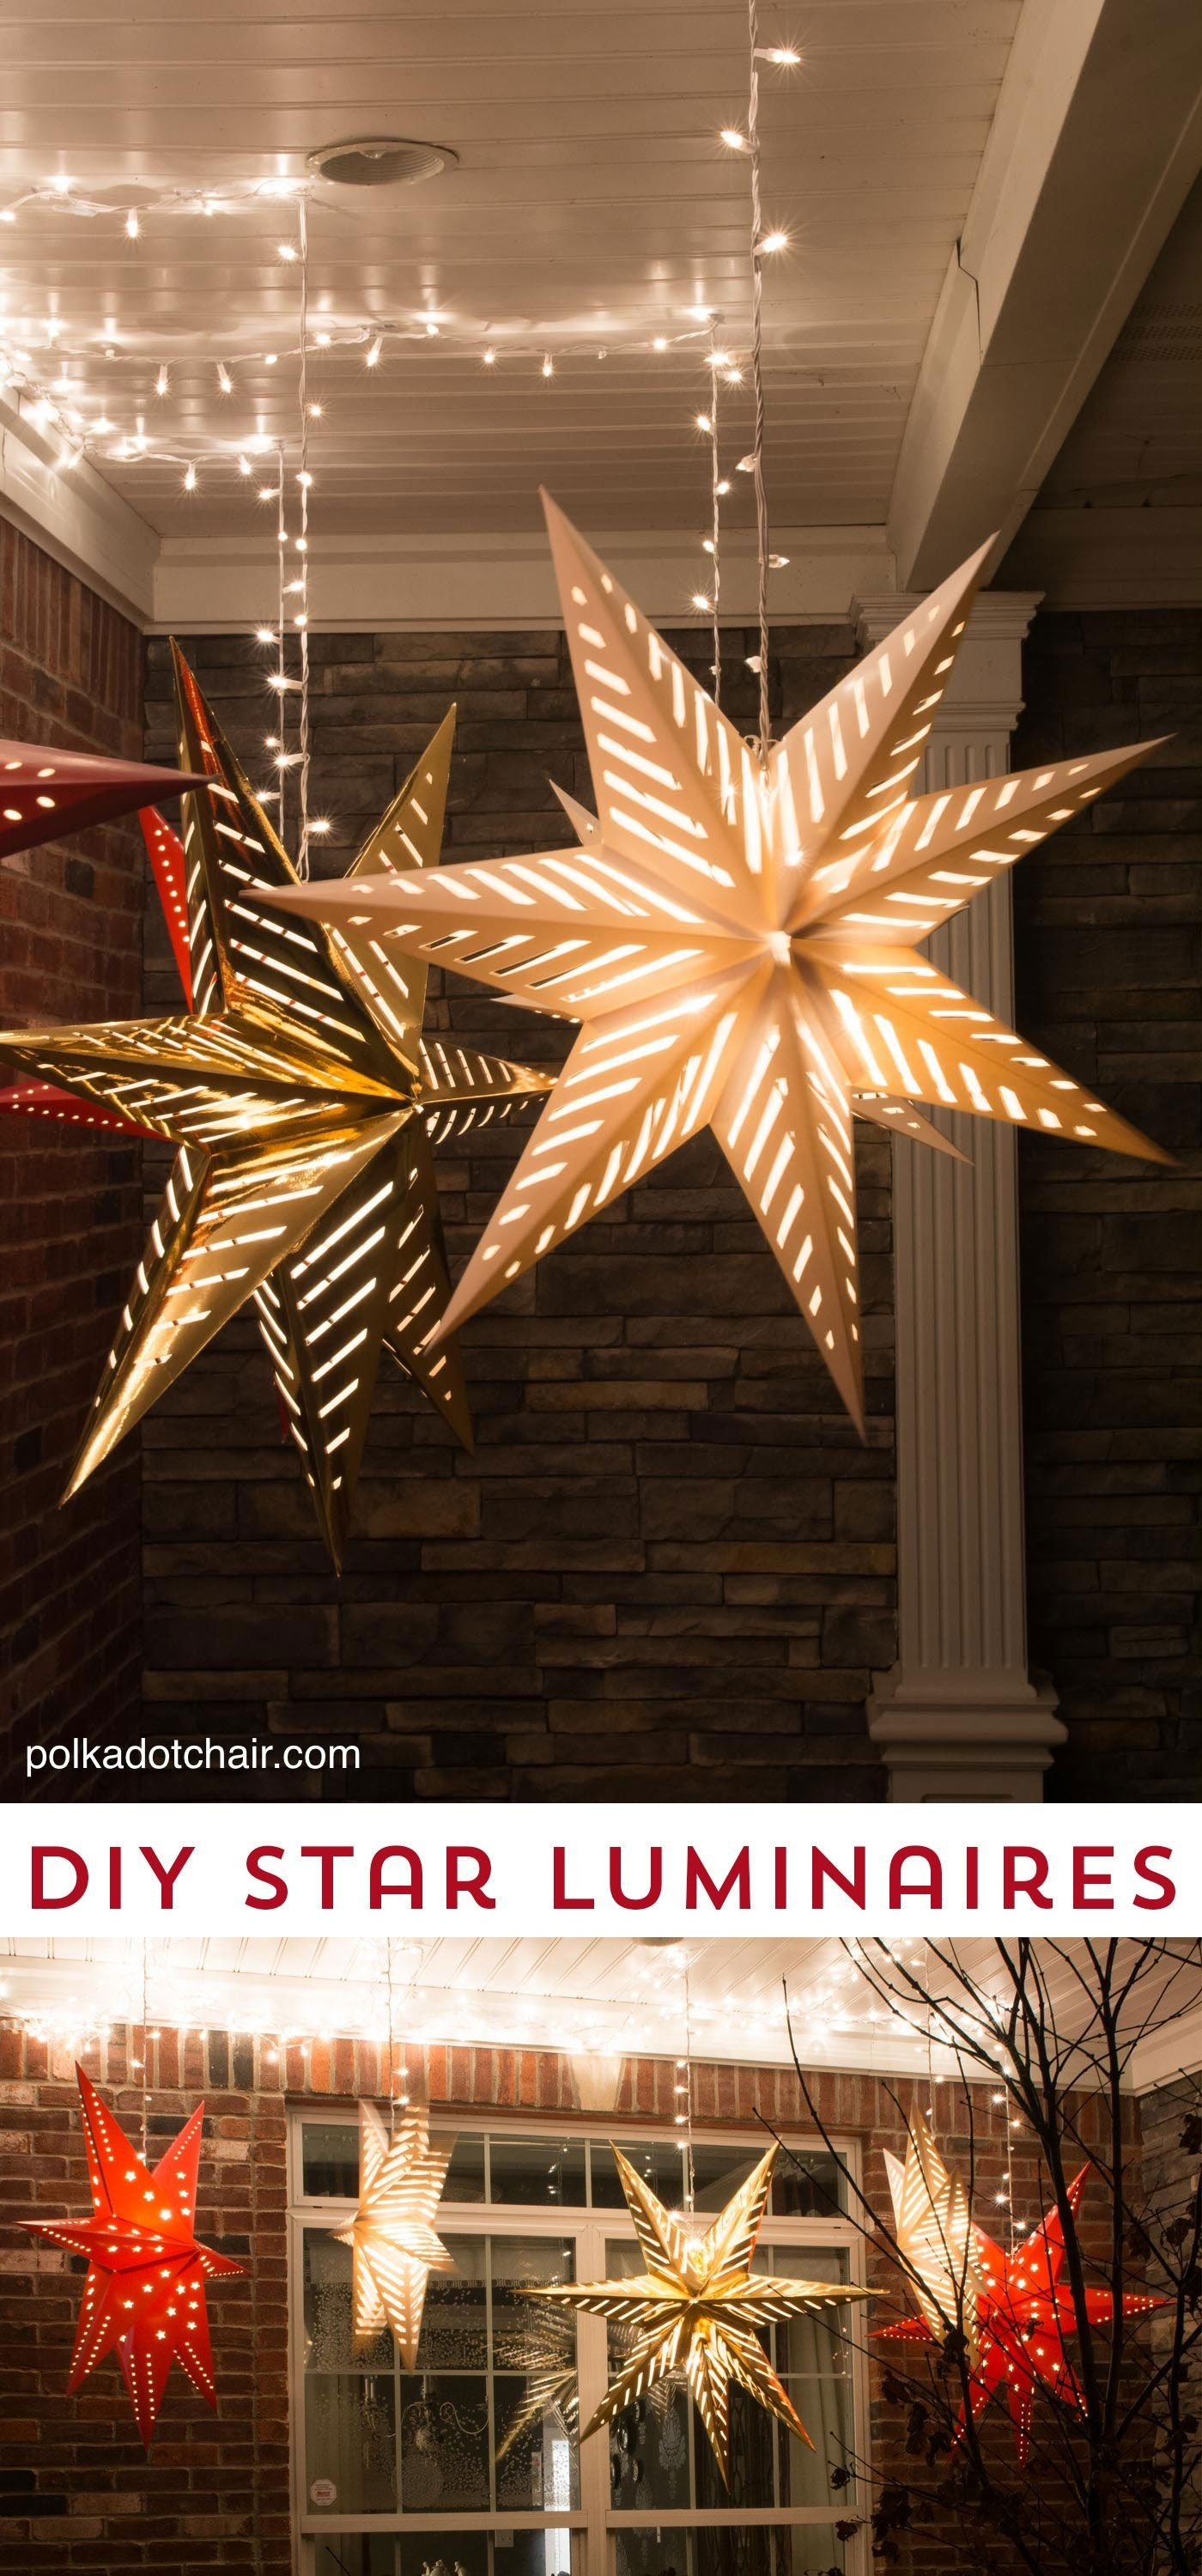 Popular Photo of Outdoor Hanging Star Lanterns